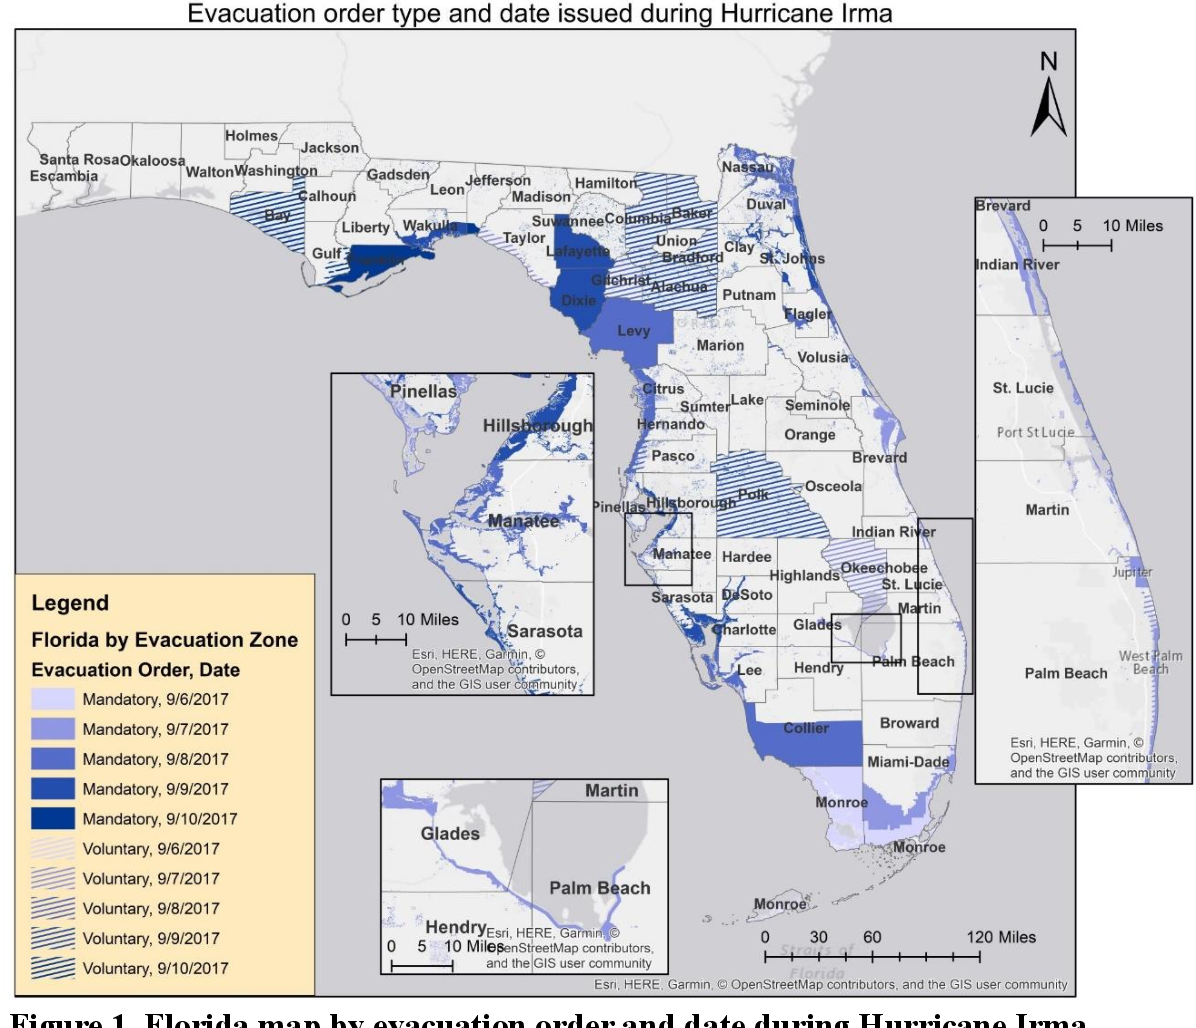 Figure 2 for Constructing Evacuation Evolution Patterns and Decisions Using Mobile Device Location Data: A Case Study of Hurricane Irma